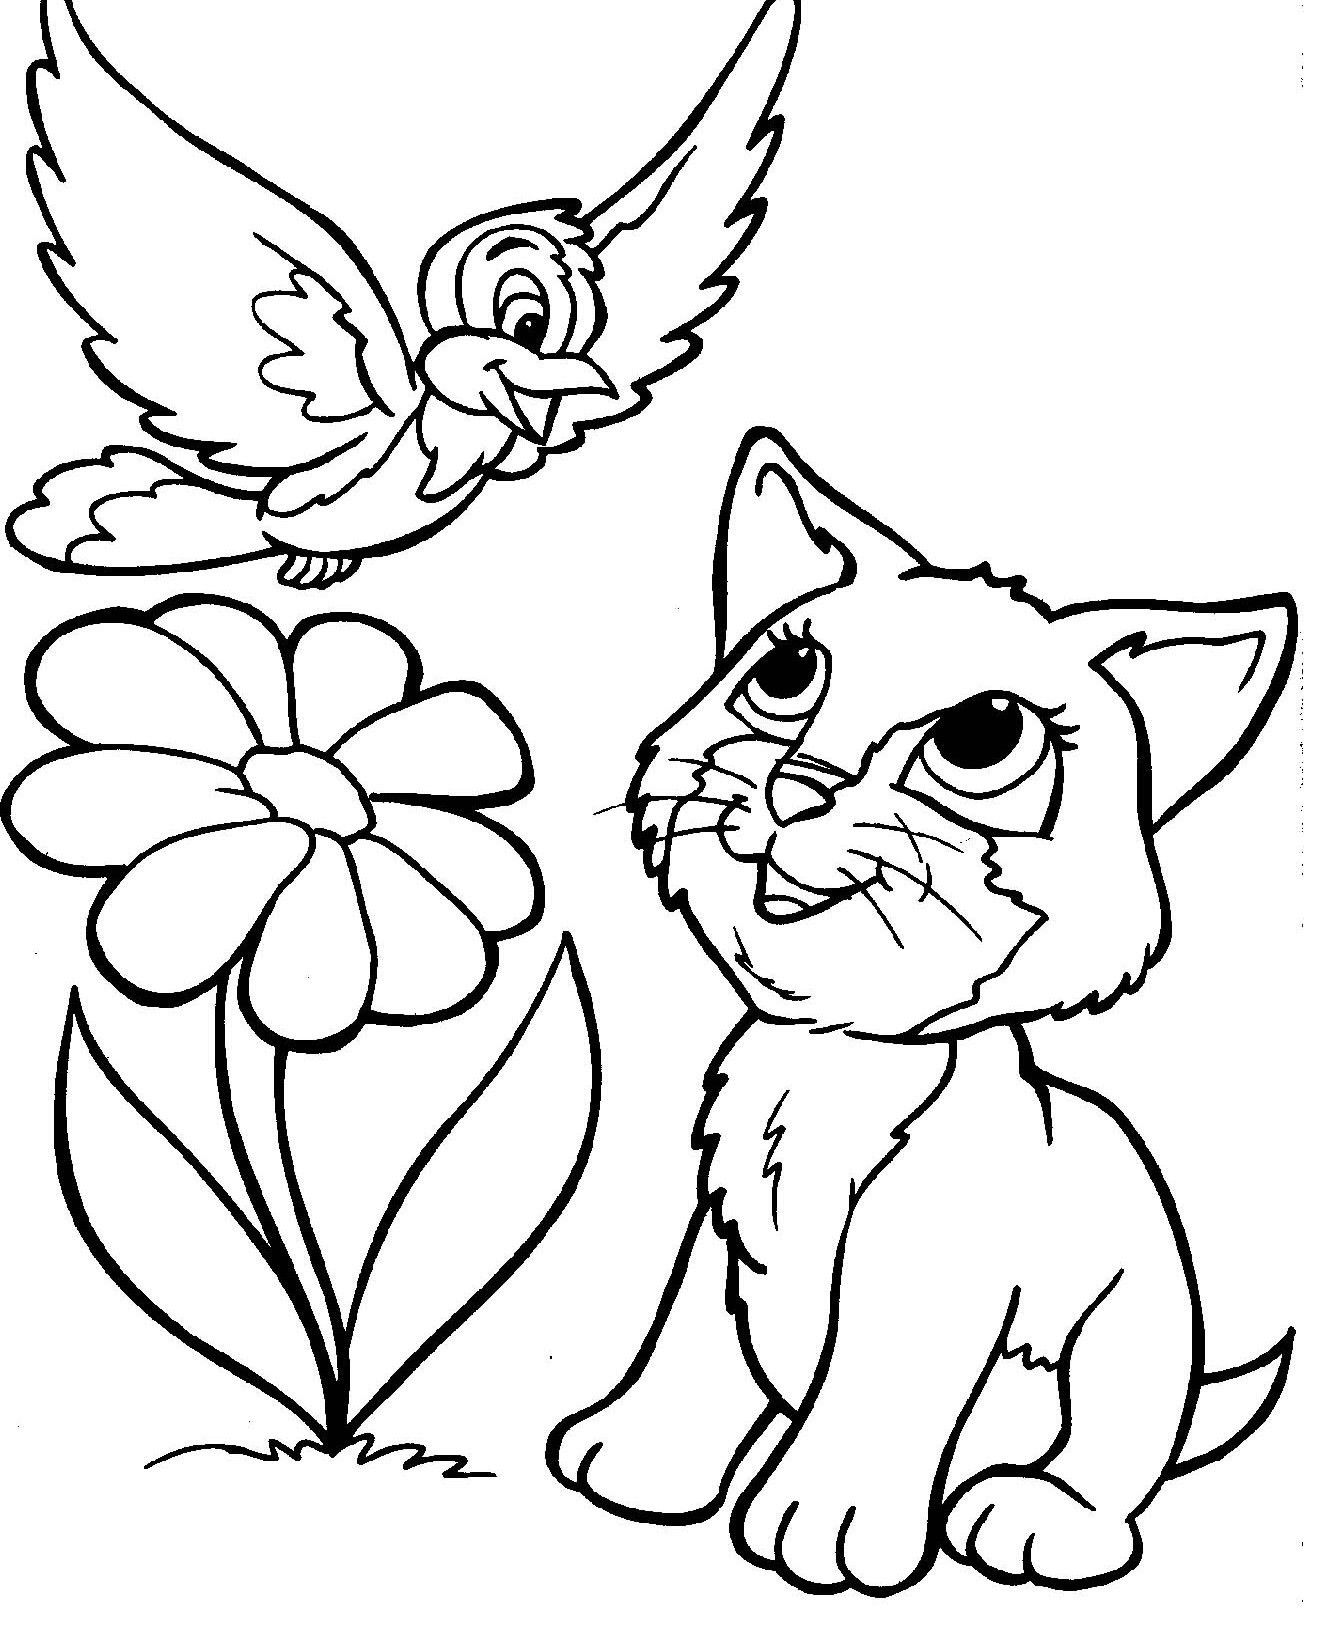 Kitty Cat Coloring Pages Through the thousand pictures